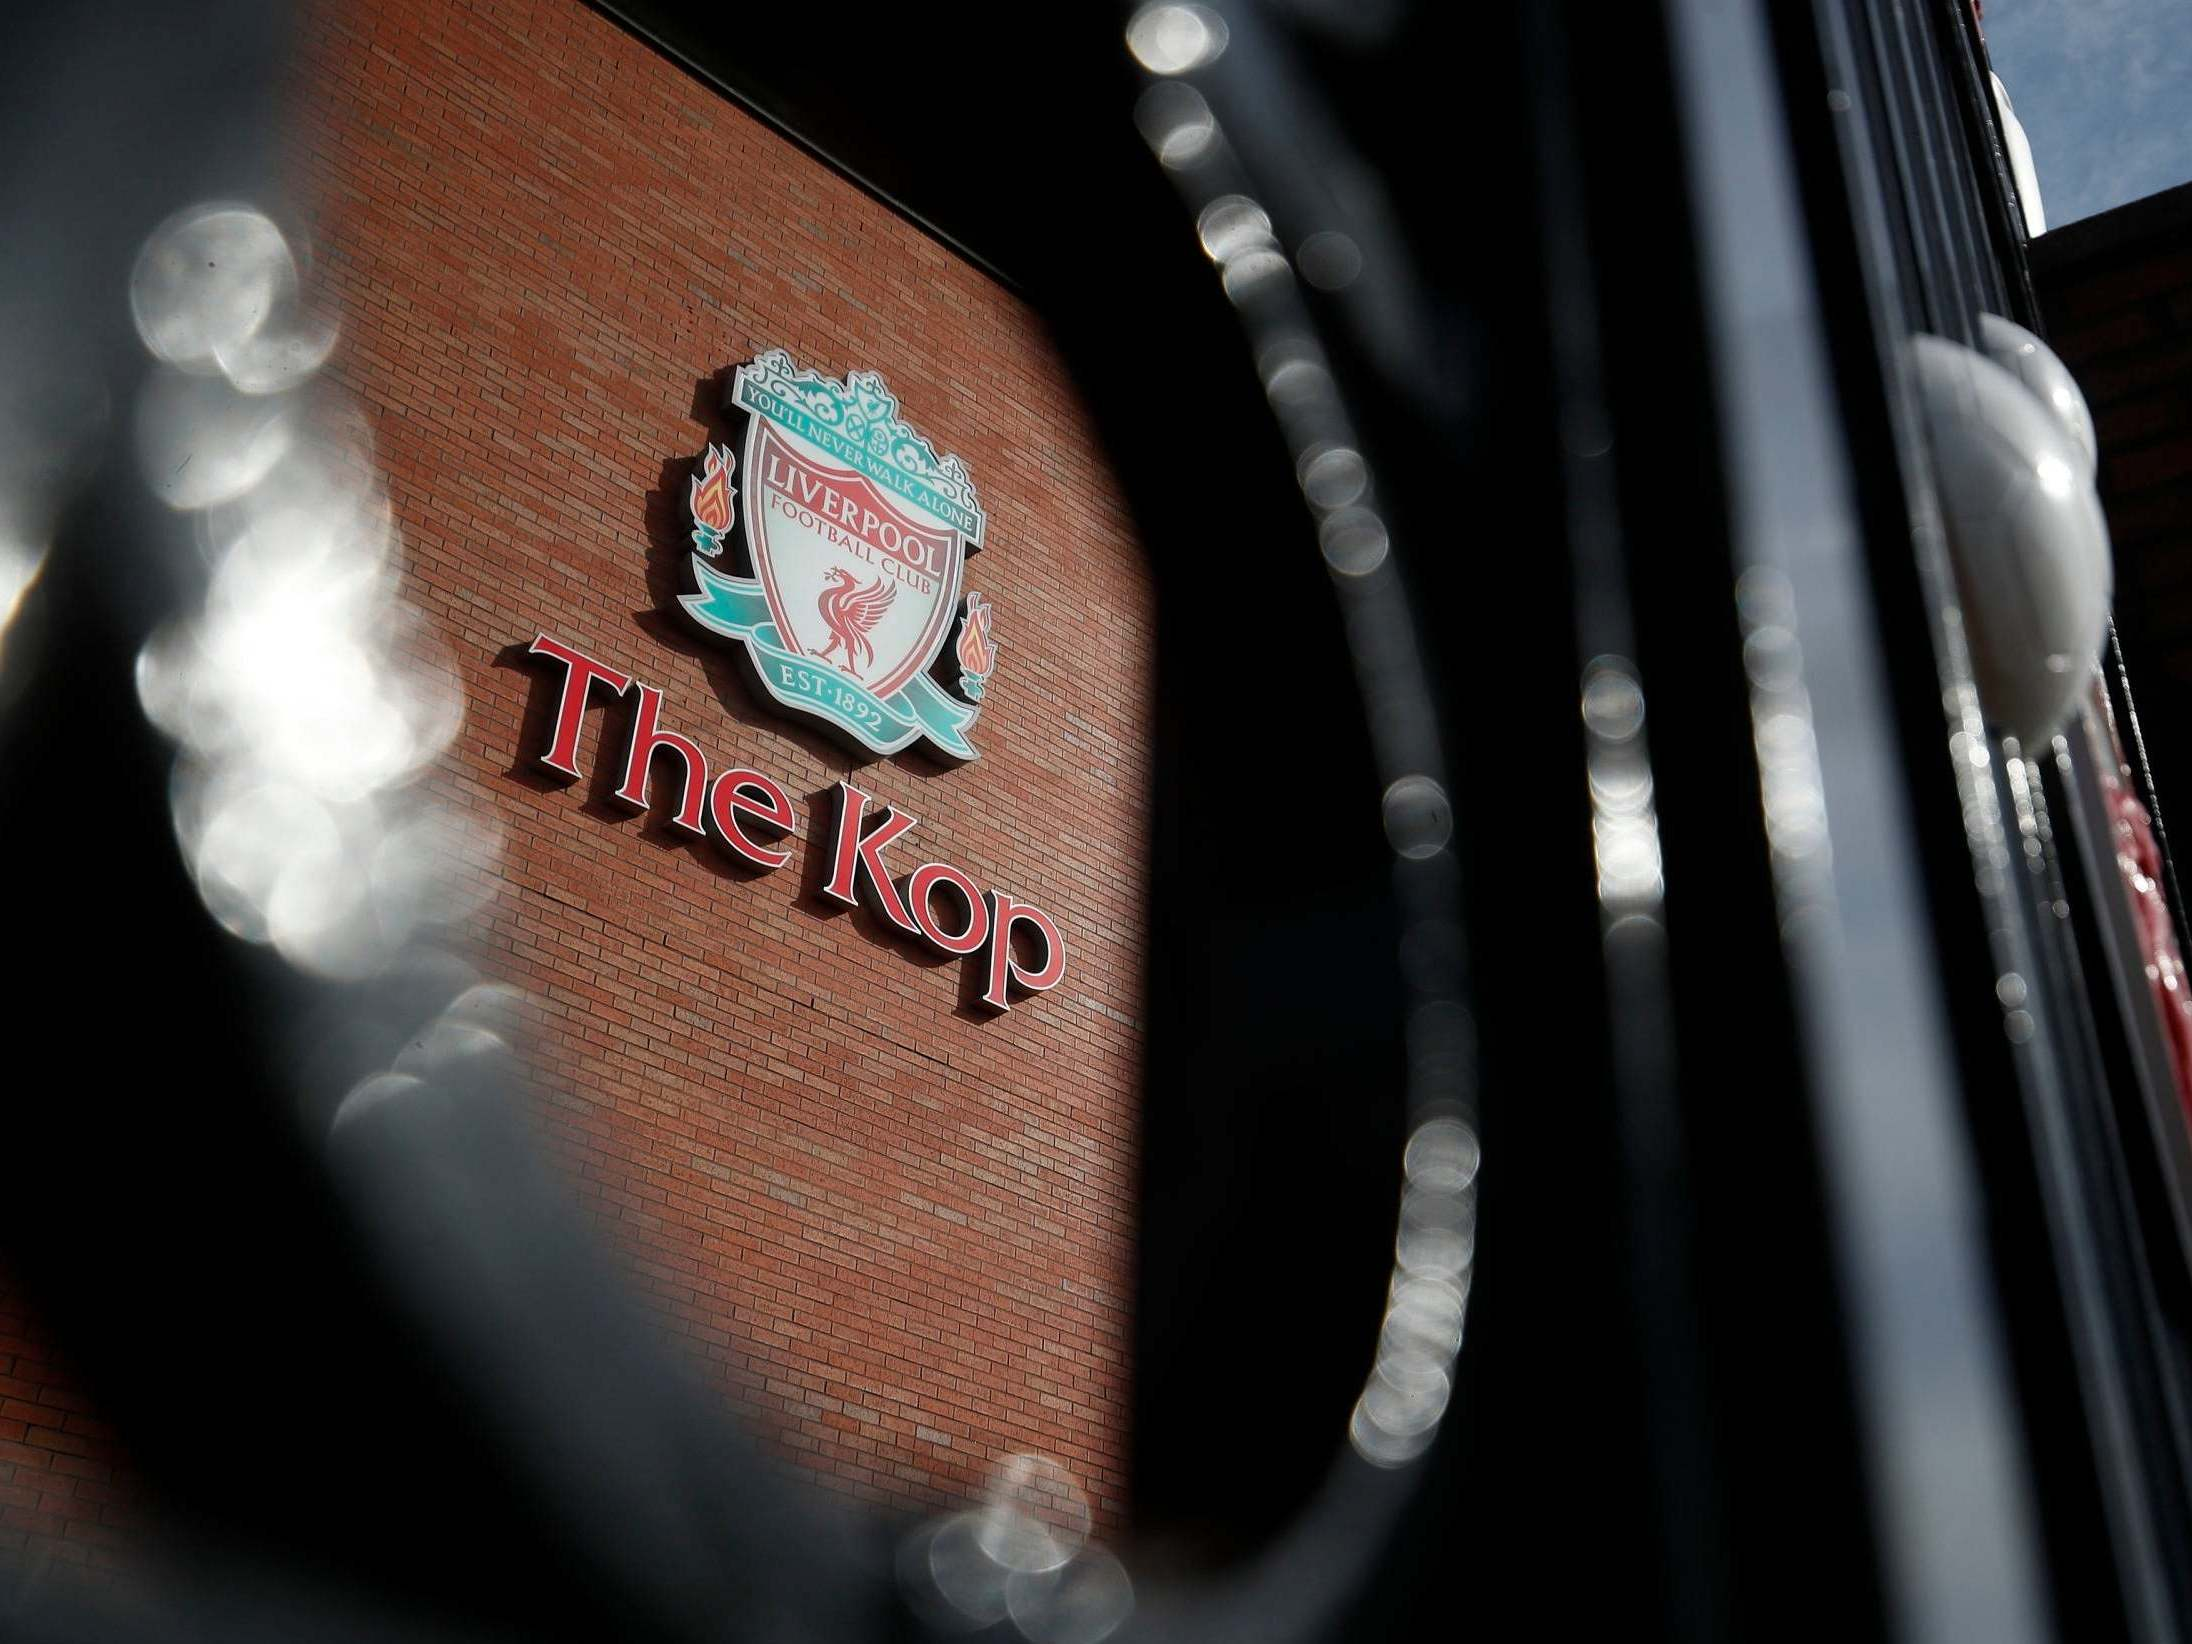 This Means More is exactly why Liverpool can't escape criticism for furloughing staff